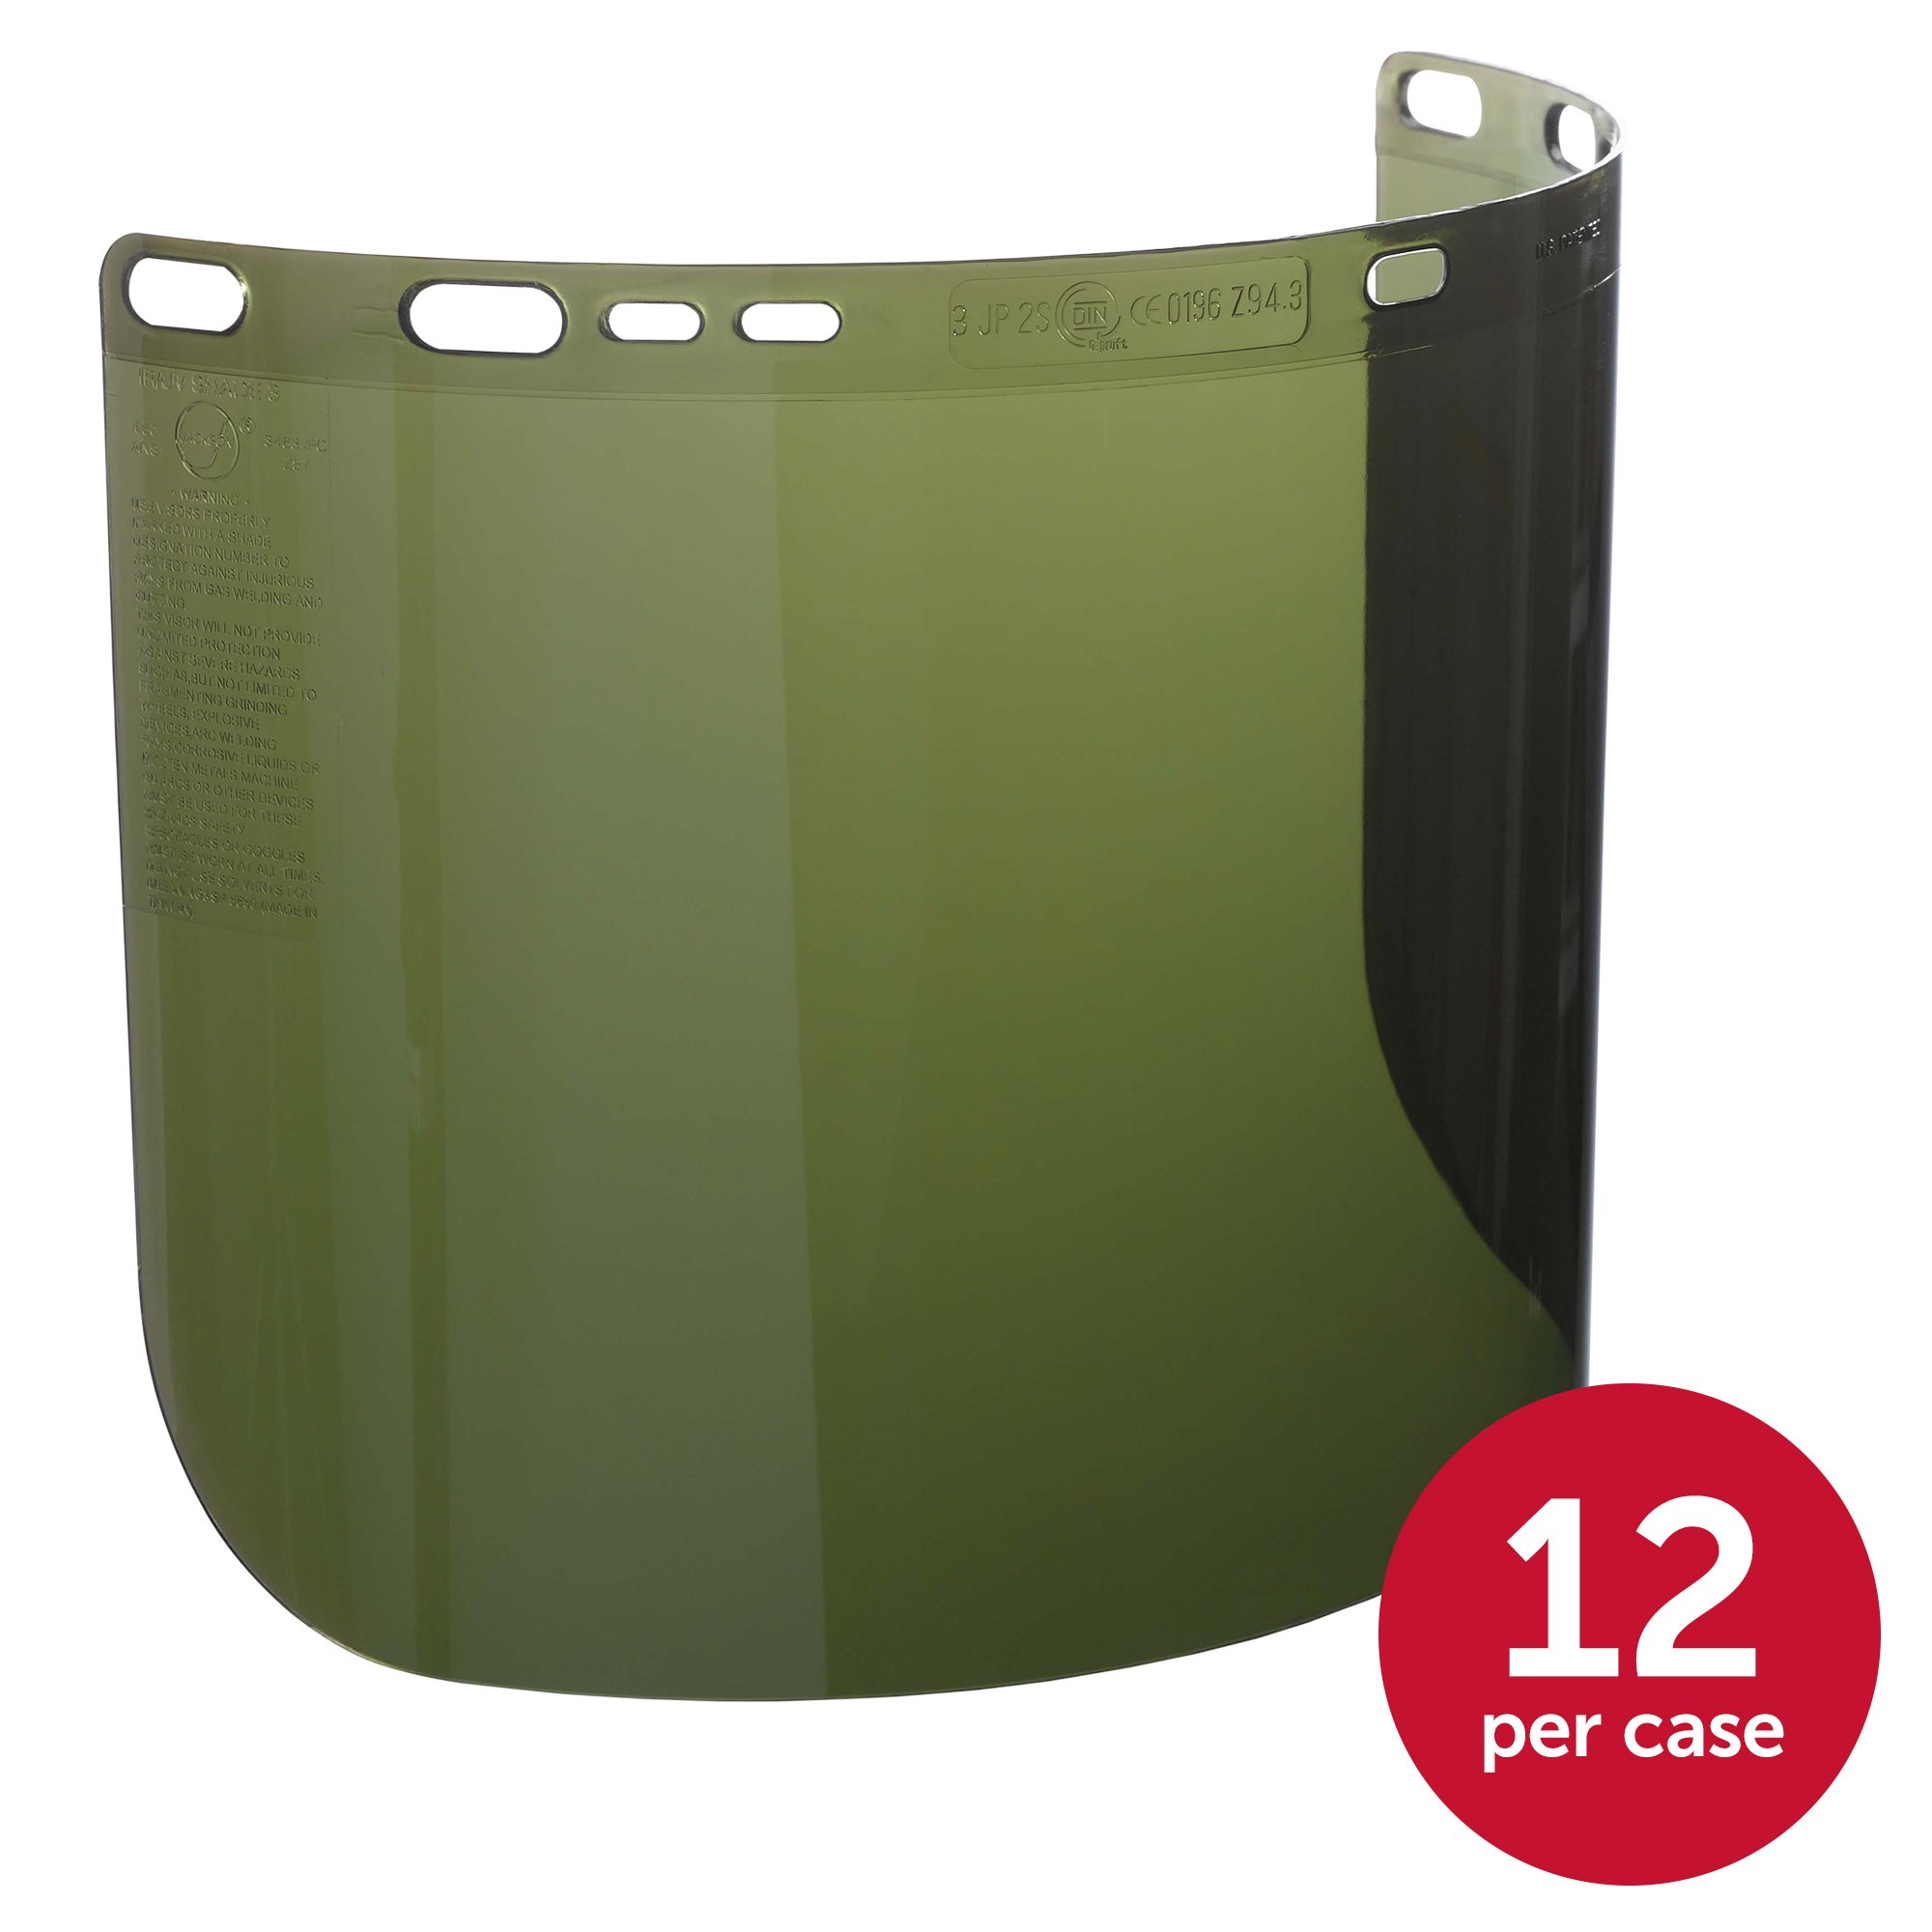 "Jackson Safety F50 Specialty High Impact Face Shield (26262), Polycarbonate, 8"" x 15.5"" x 0.06"", IRUV 3.0, Face Protection, Unbound, 12 Shields / Case by Jackson Safety (Image #2)"